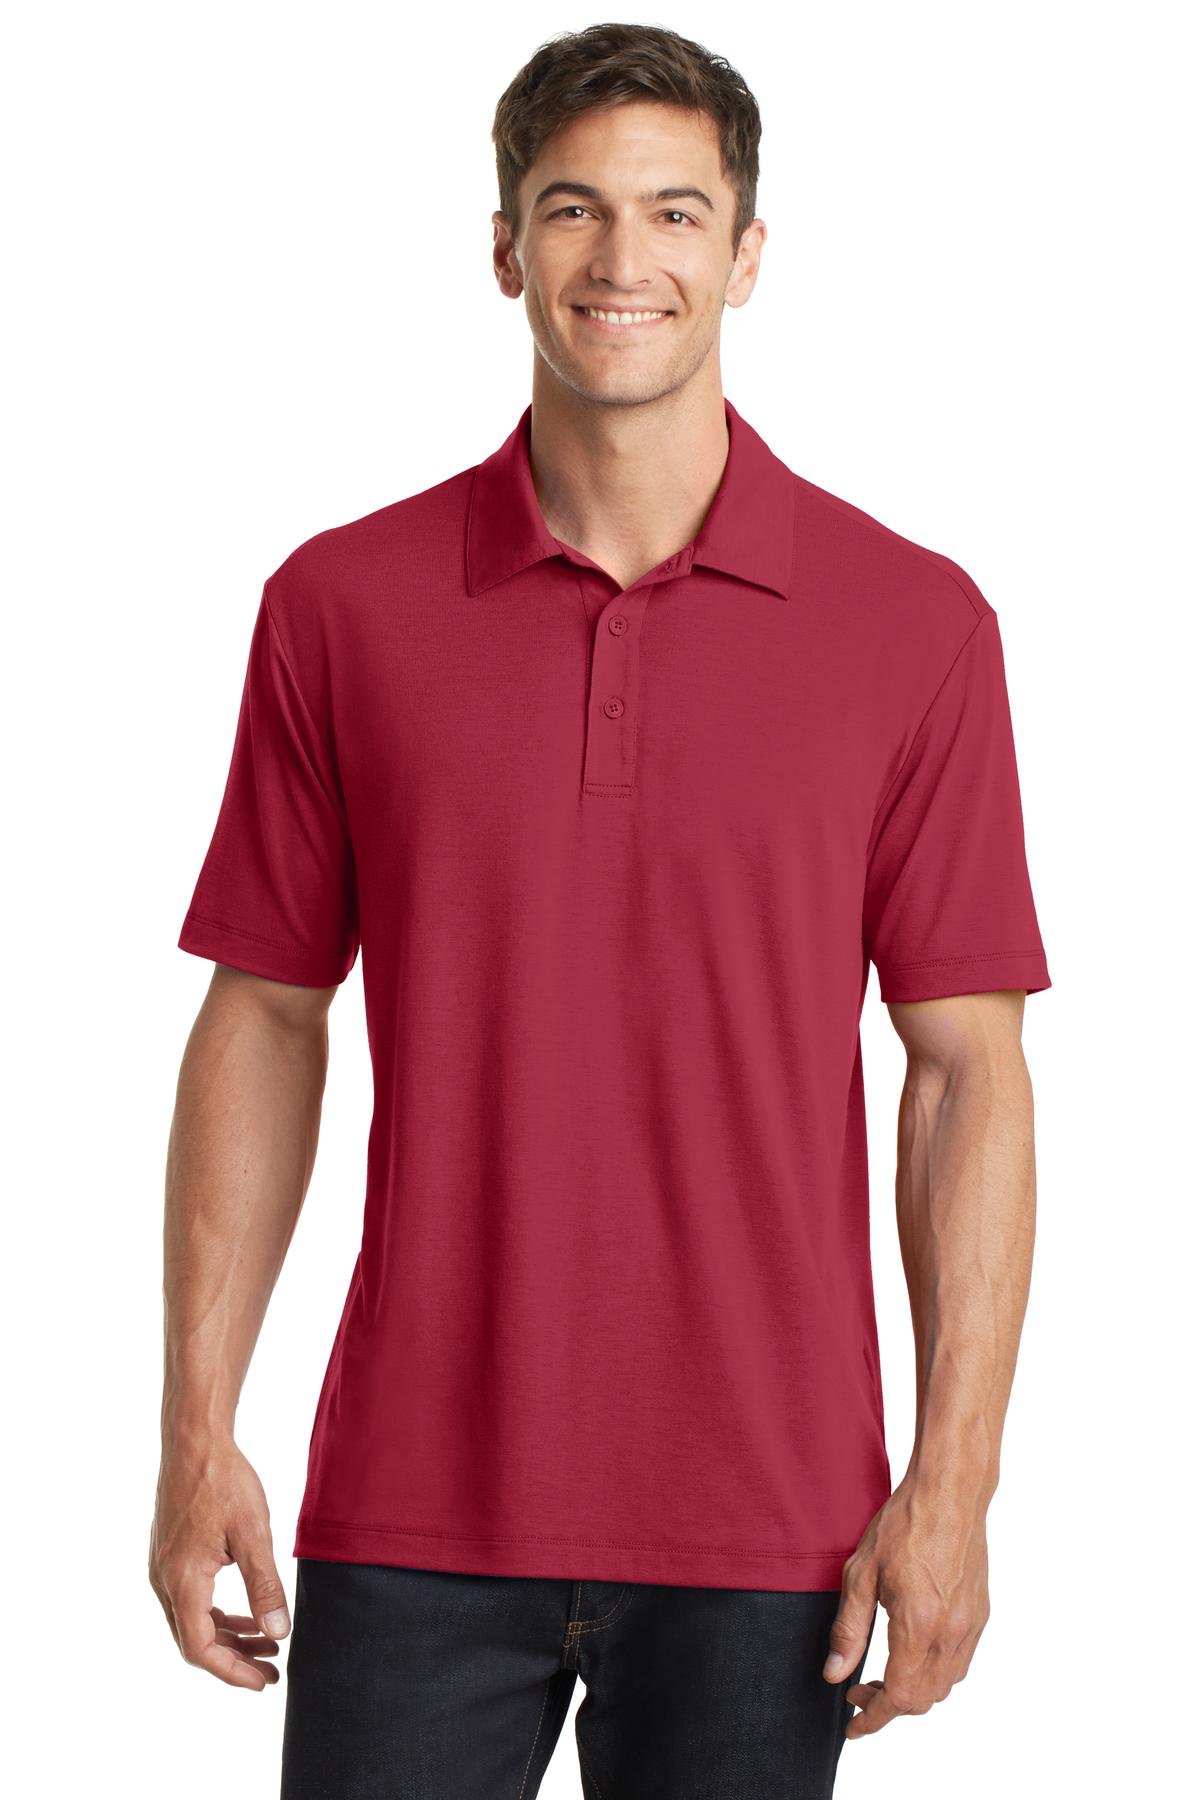 Port Authority® K568 - Cotton Touch Performance Polo